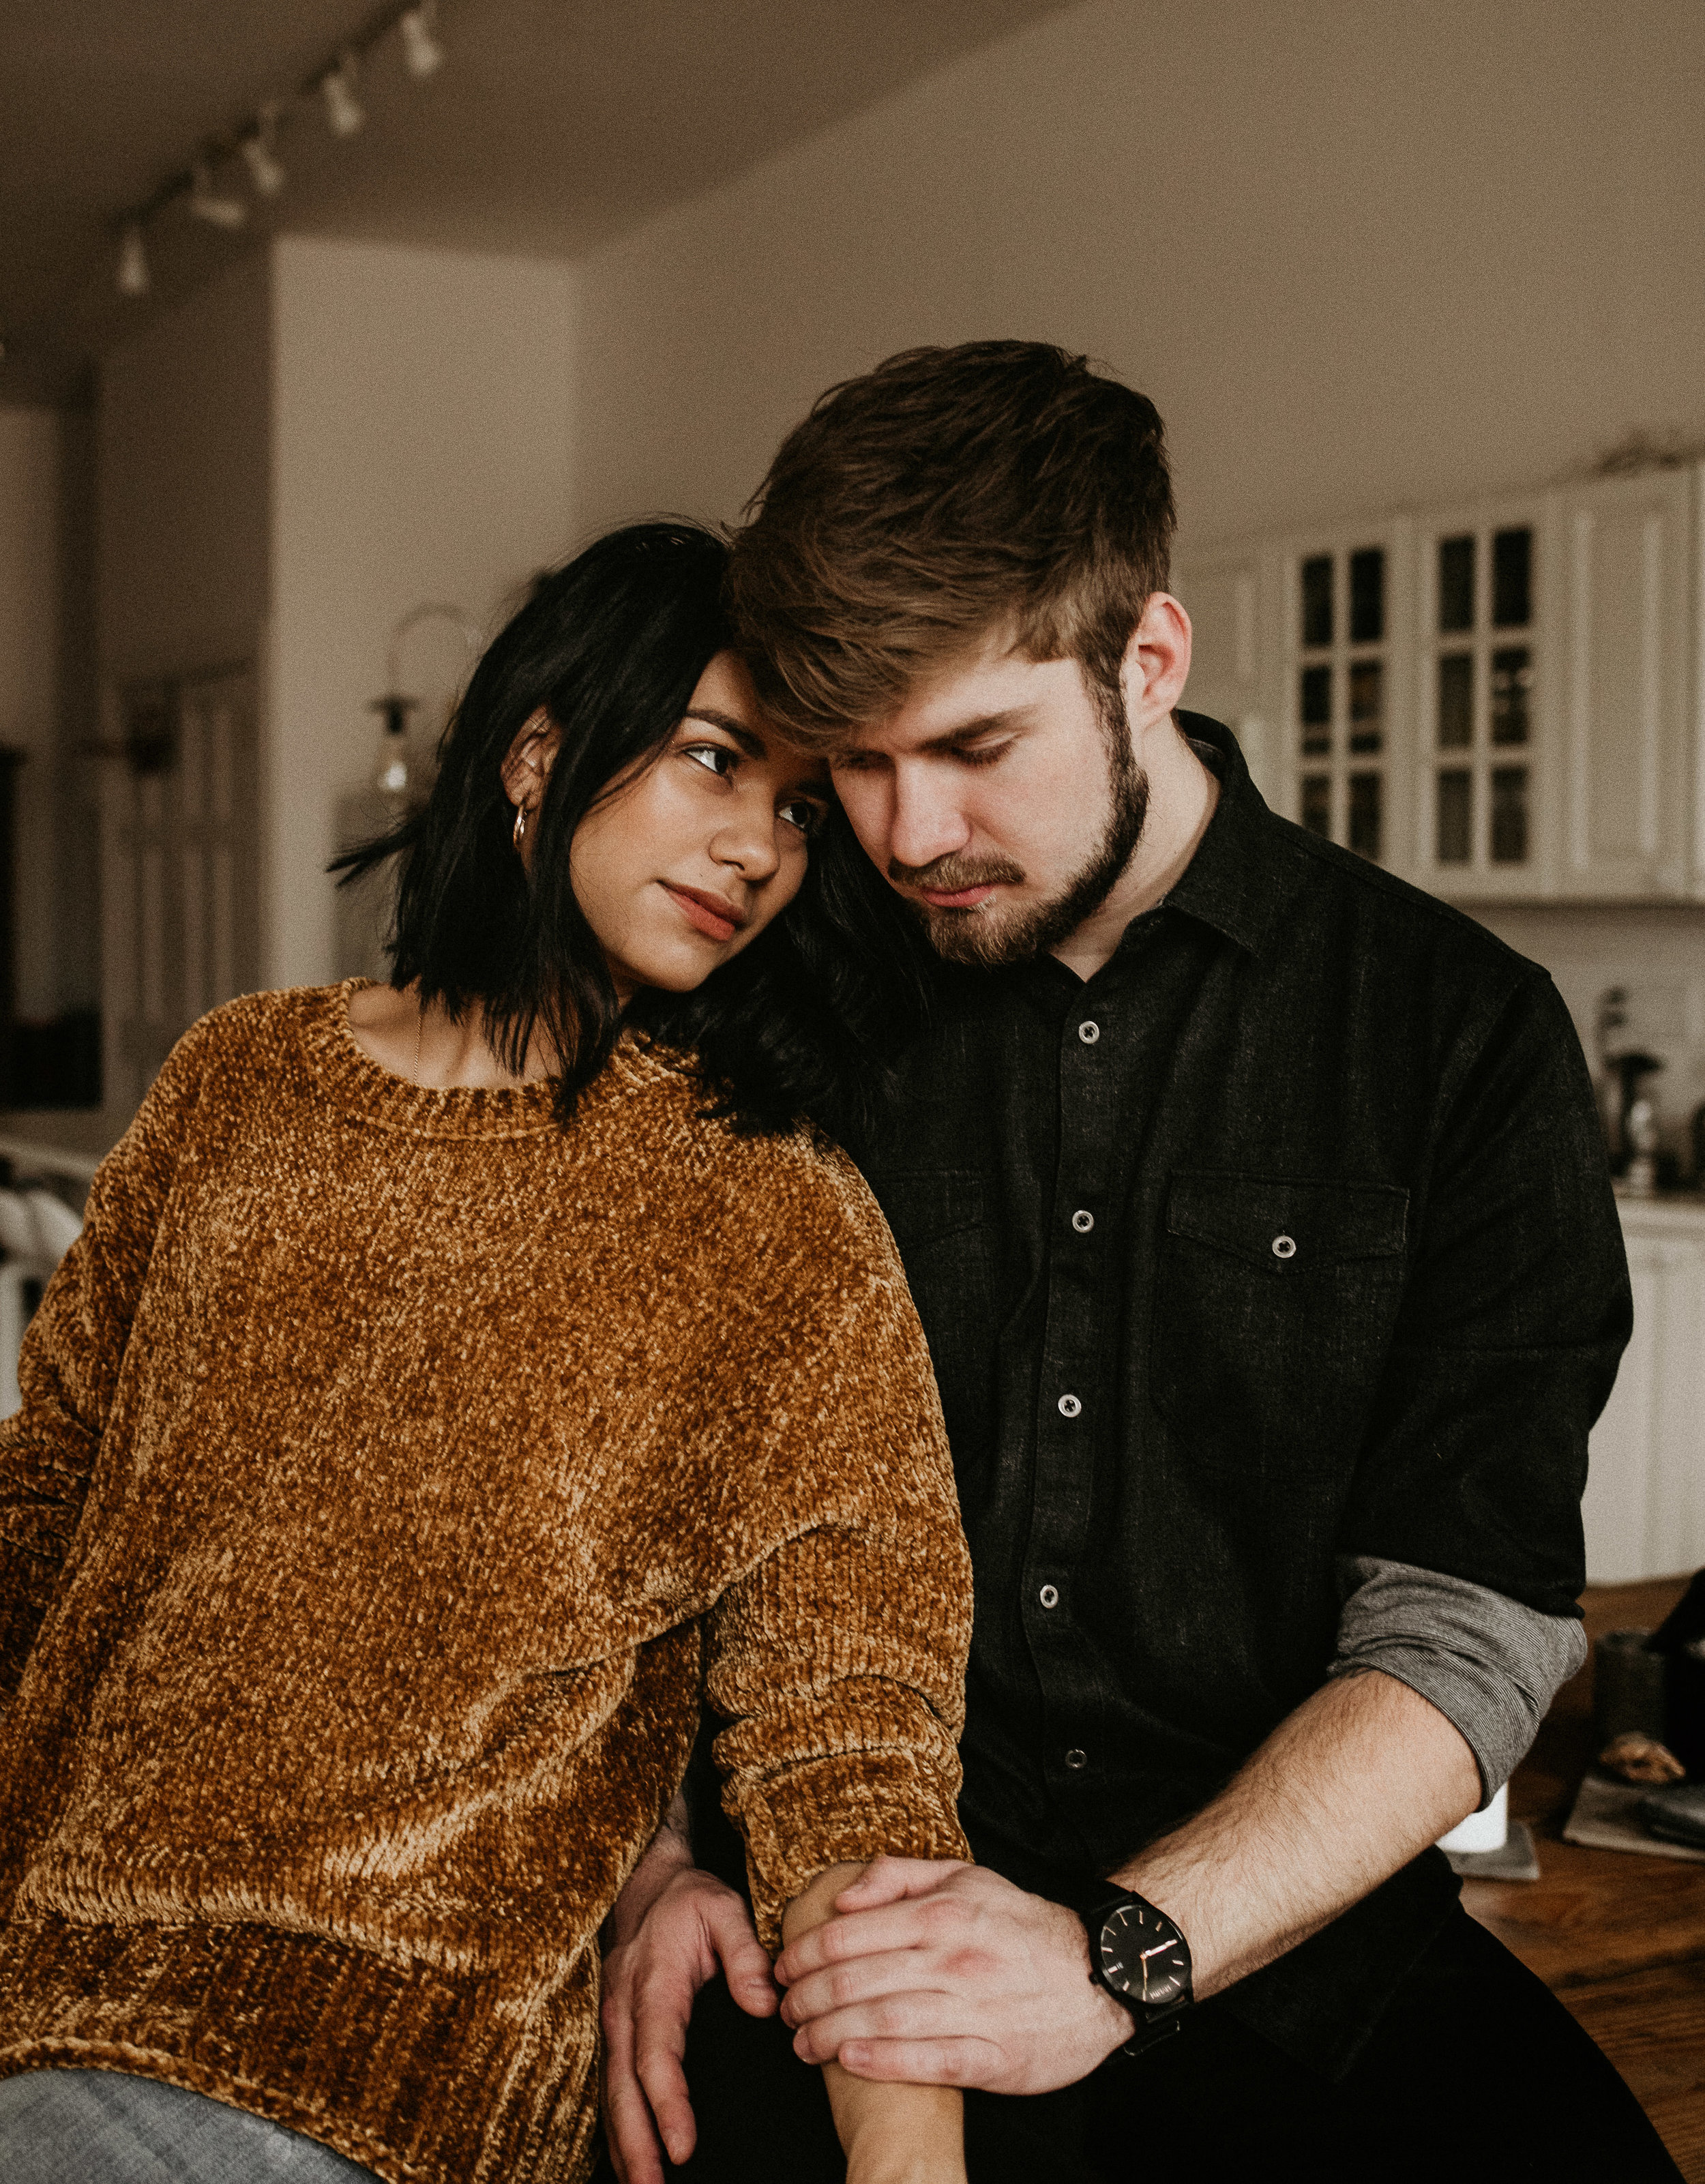 Couple In-Home Session 18.jpg